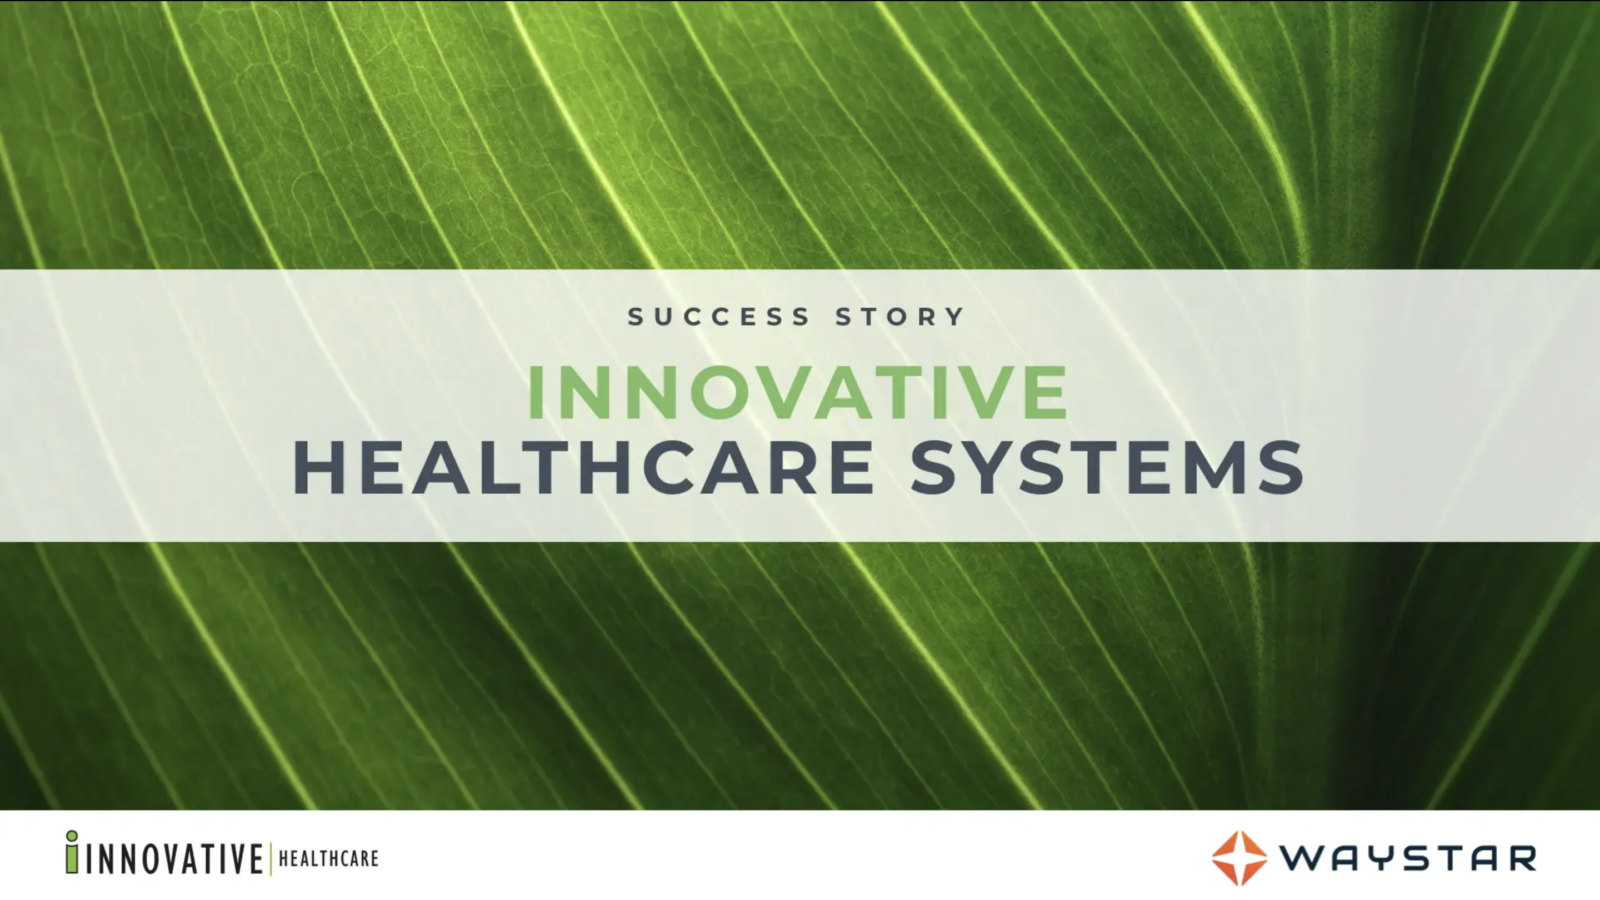 Success story: Innovative Healthcare Systems